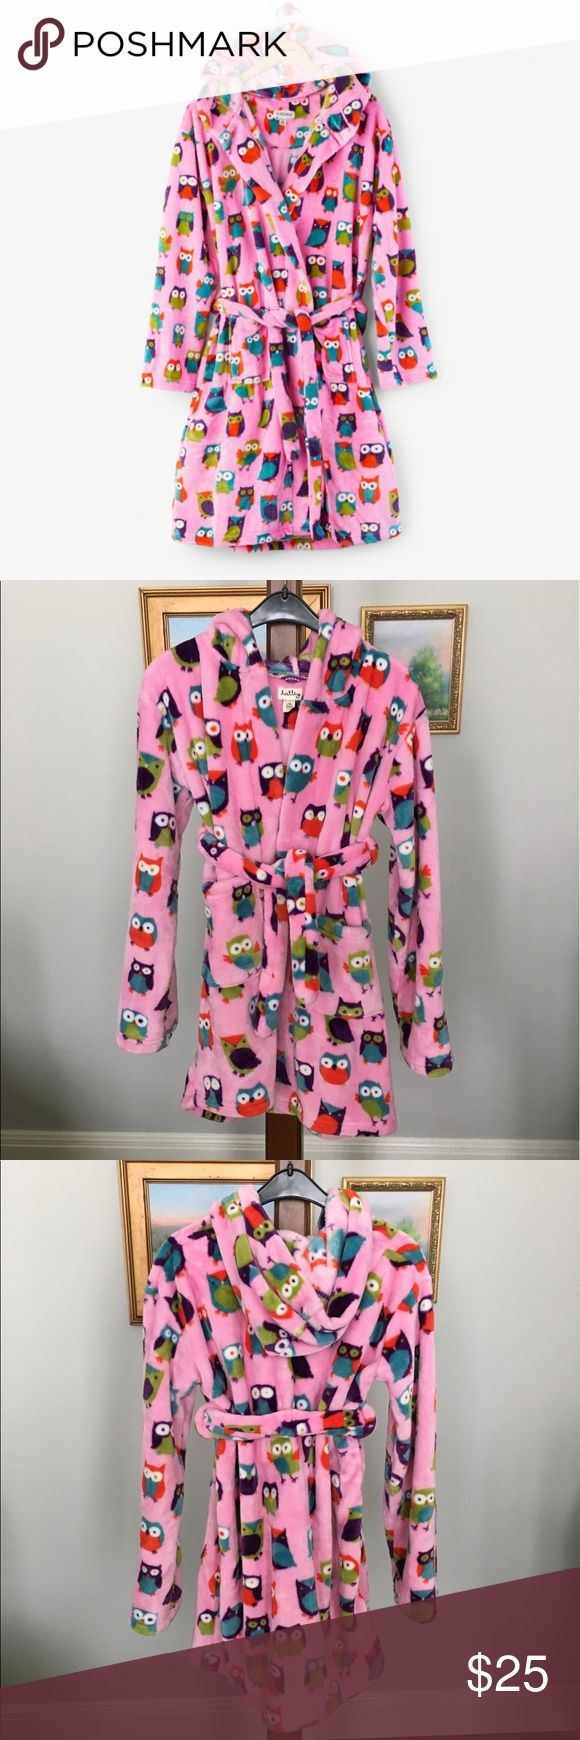 """Hatley Party Owls Fleece Robe size XL This robe is adorable and I can't even begin to describe how soft it is💕 Hatley Party Owls fleece robe size XL (8-10) in excellent condition ❤️ Has two pockets on the front and a hood. Chest measures approx. 36"""", length 29"""". Hatley Pajamas Robes"""